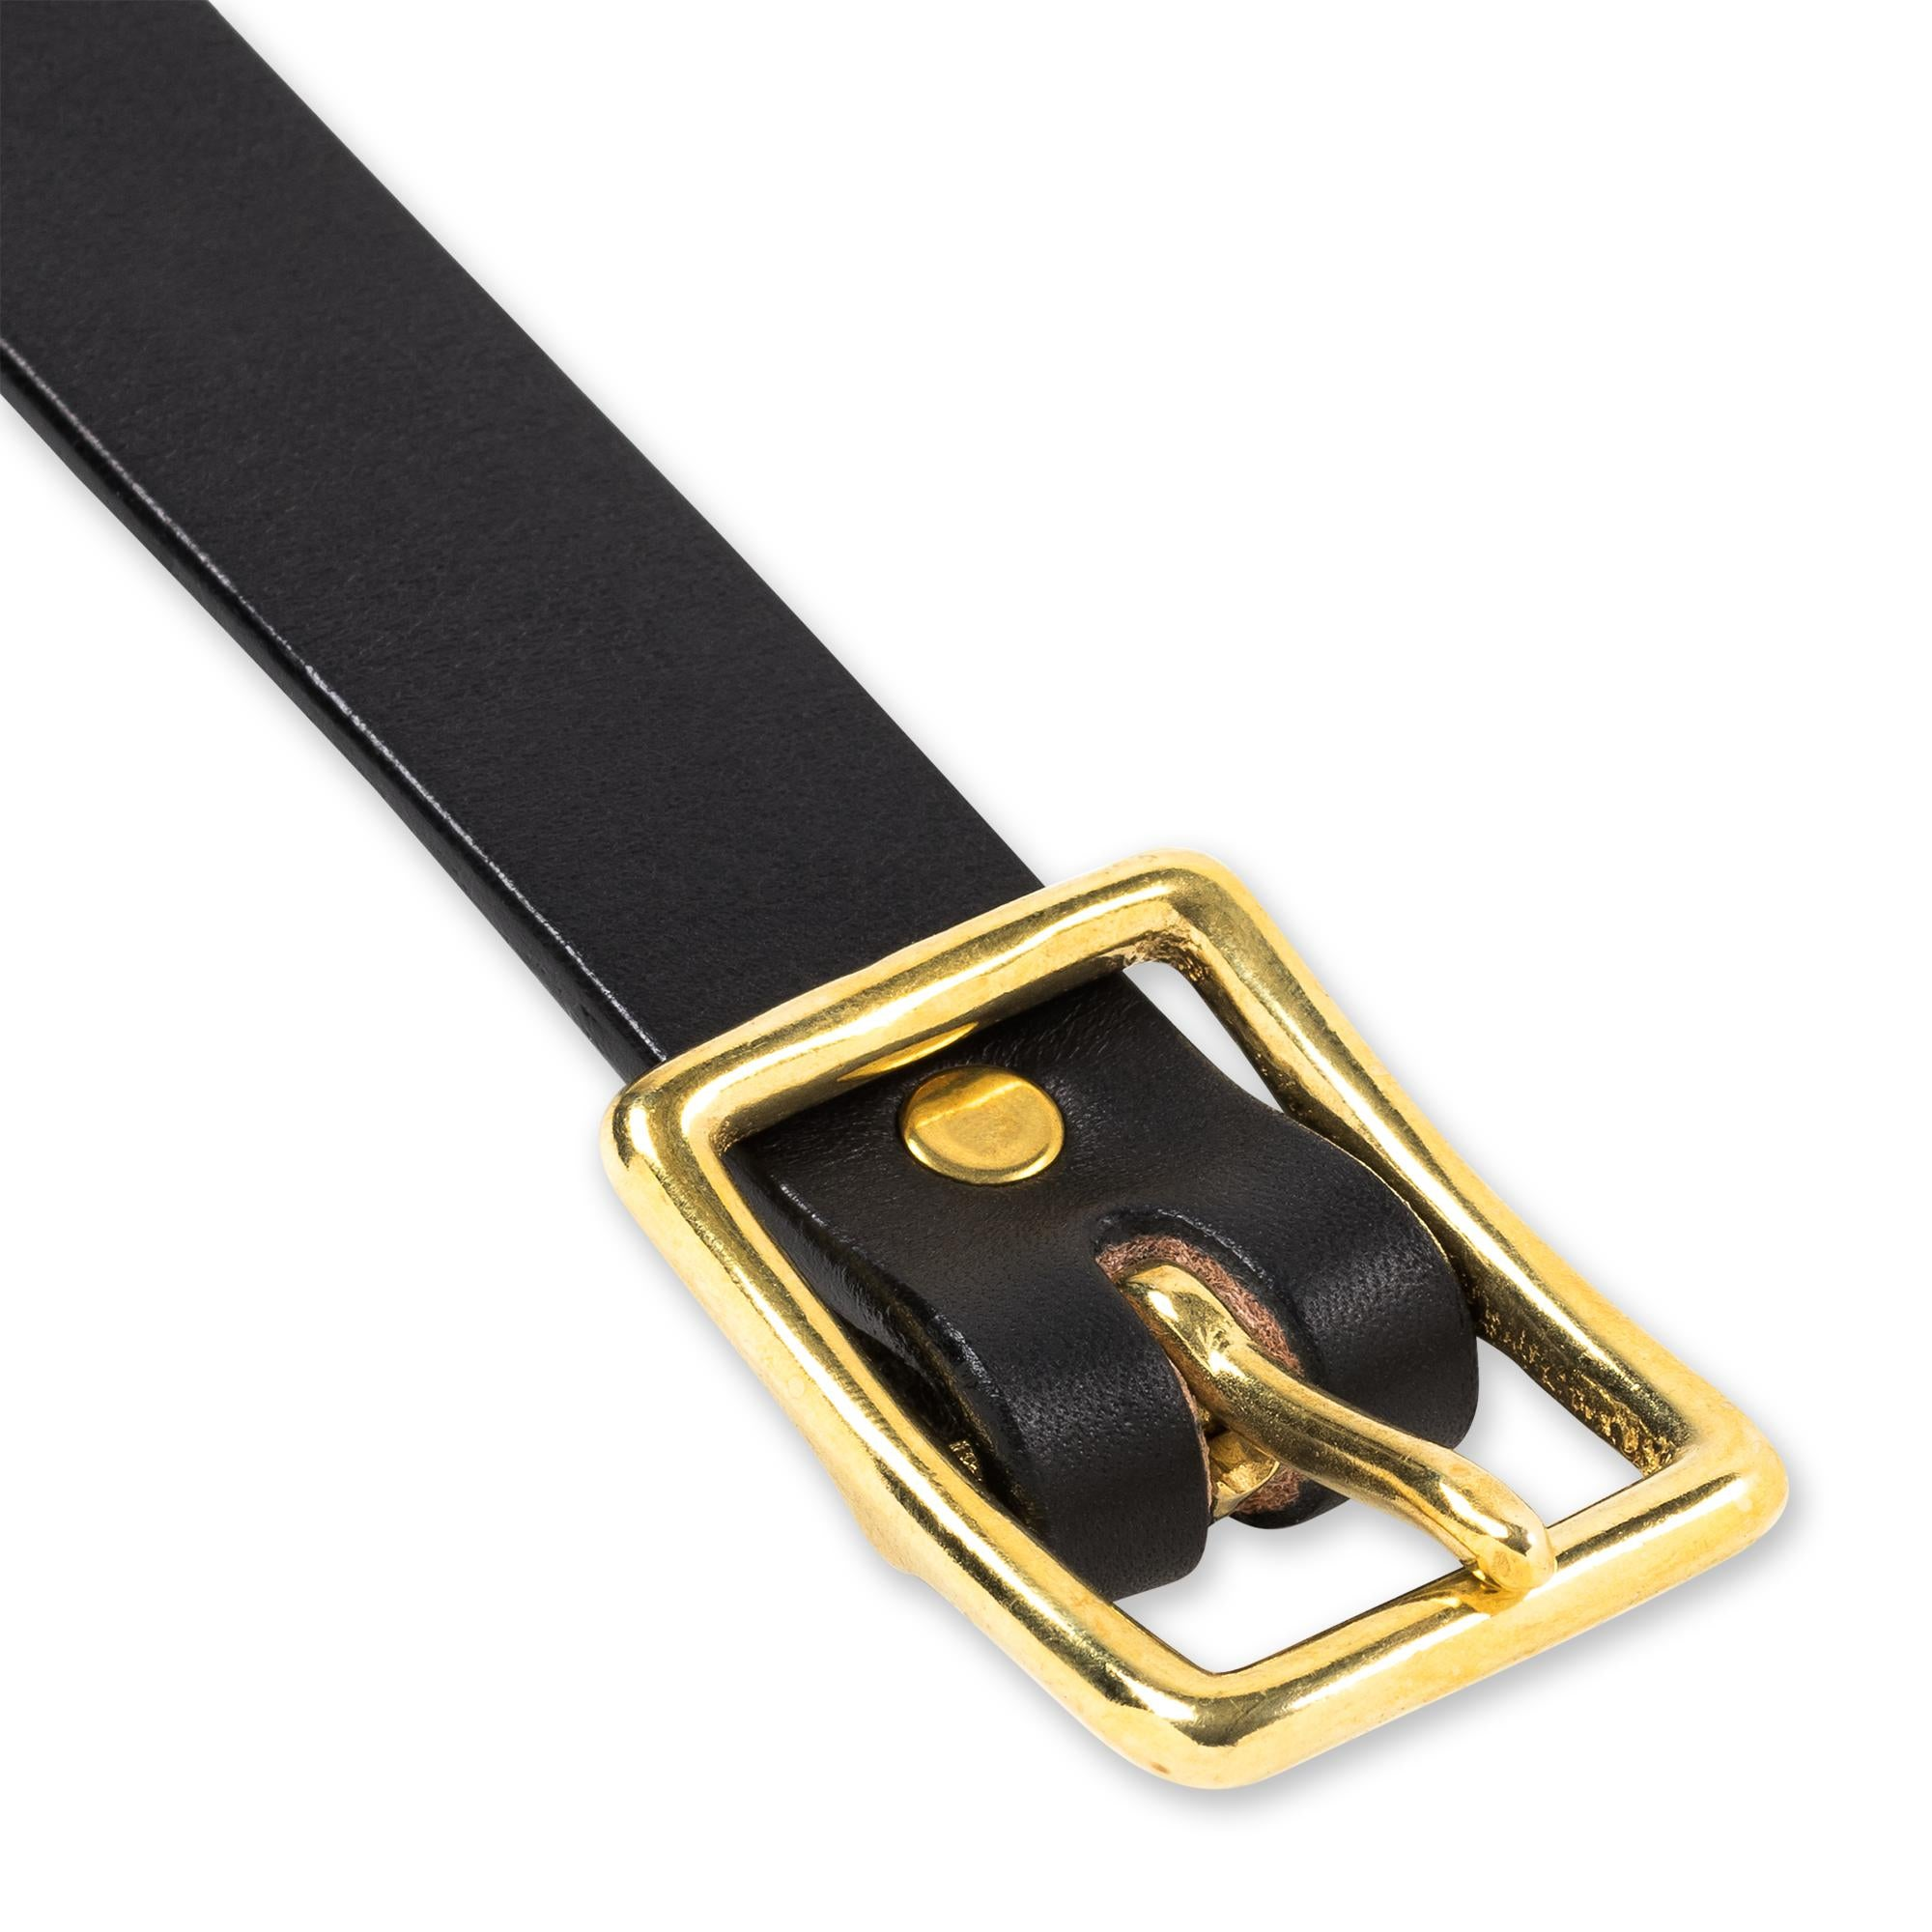 Center Bar Belt in Jet Belt - Blake Goods - English Bridle Leather Belt